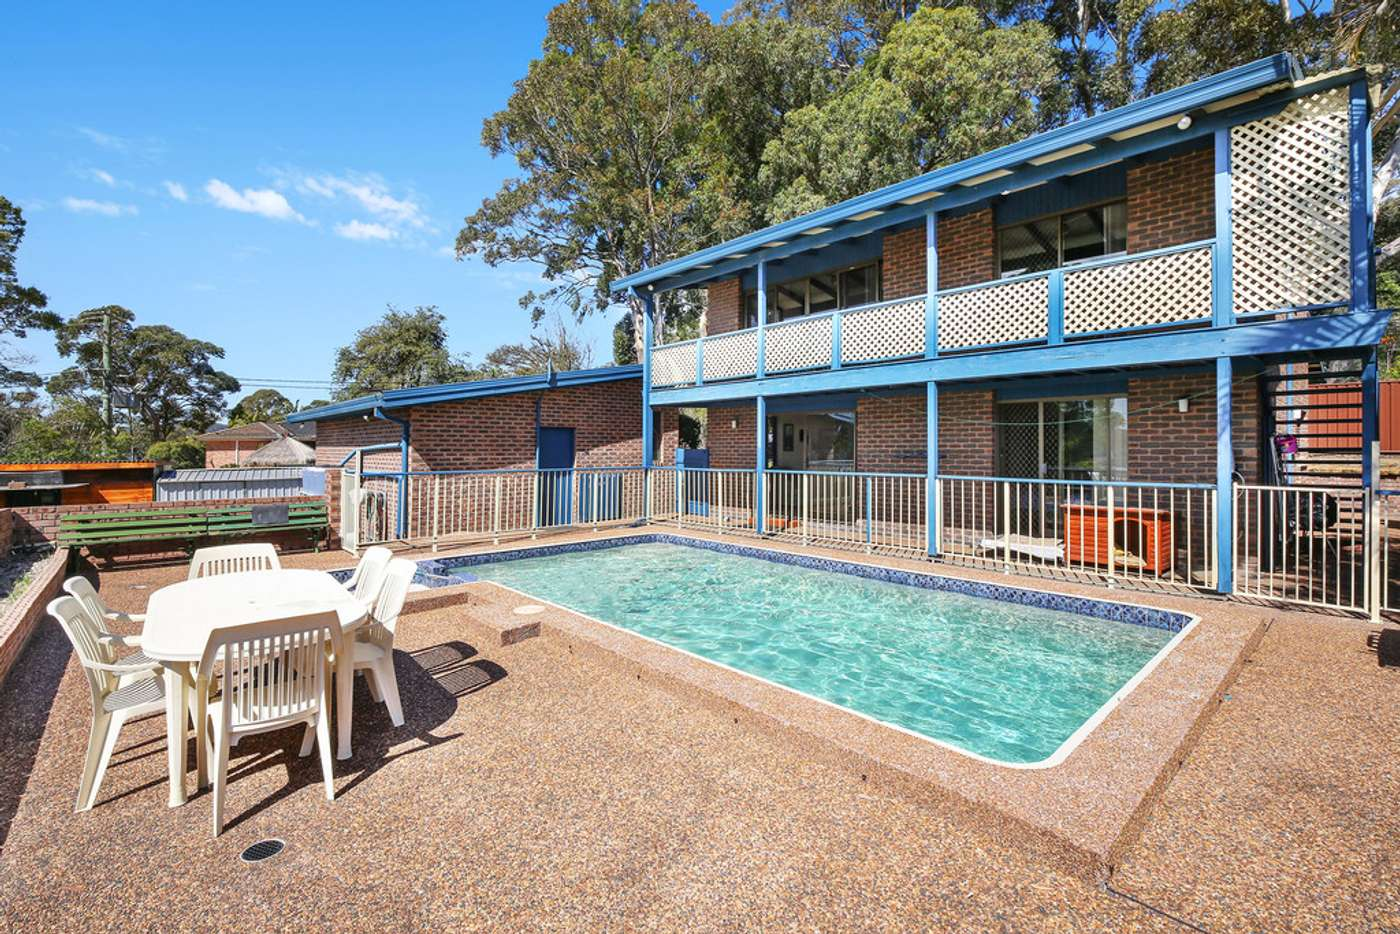 Main view of Homely house listing, 31 Hillcrest Road, Empire Bay NSW 2257